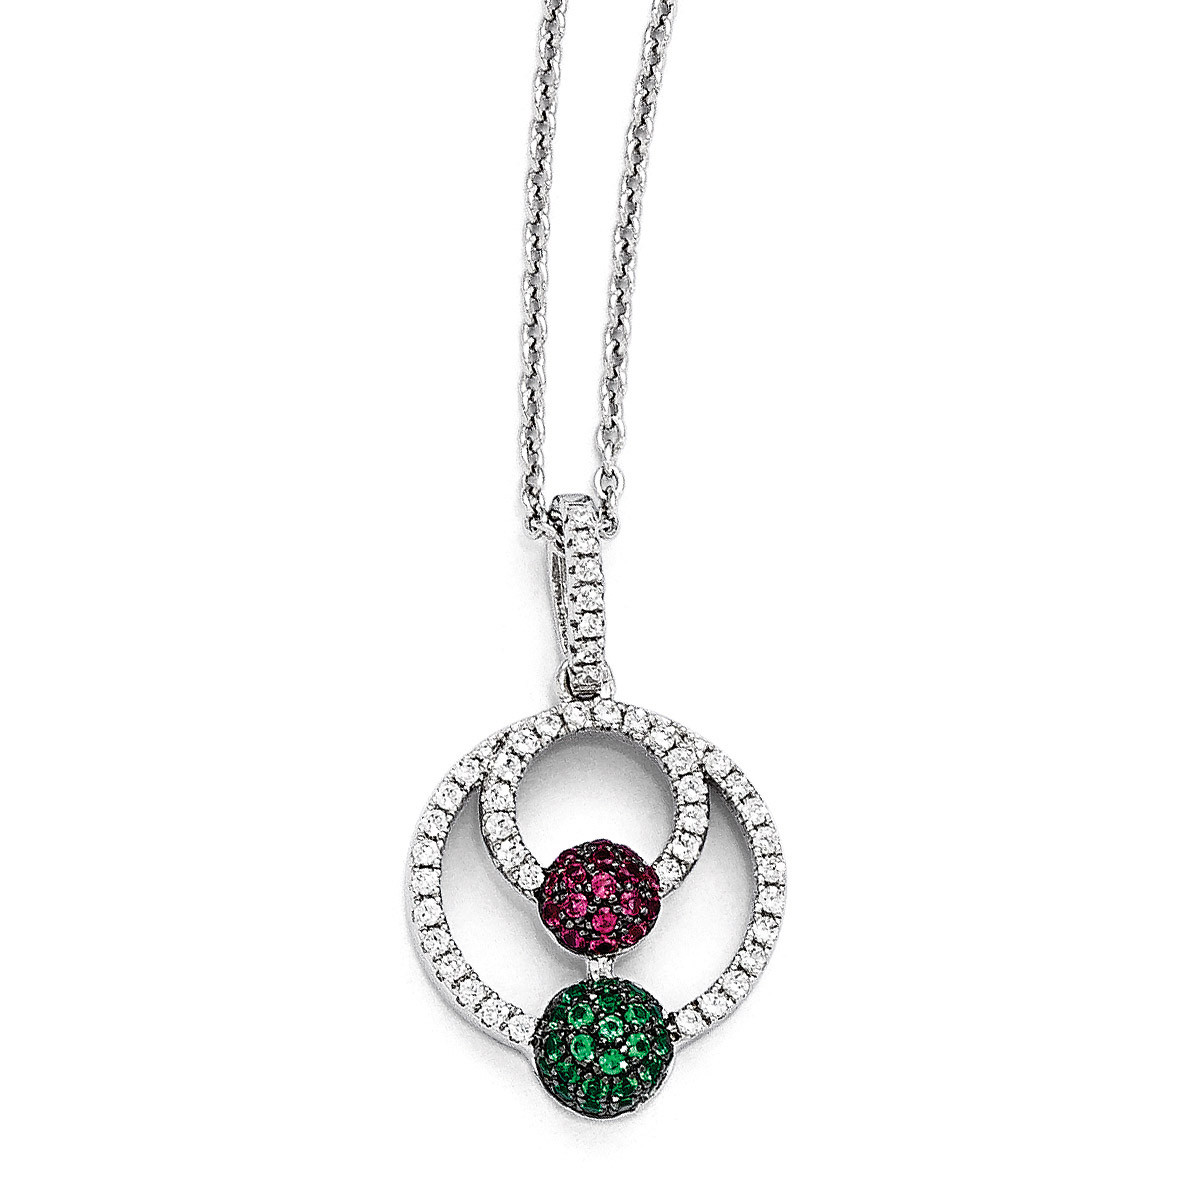 2 Extender Brilliant Embers Sterling Silver Rhodium-plated Polished CZ Skull Pendant Necklace 18